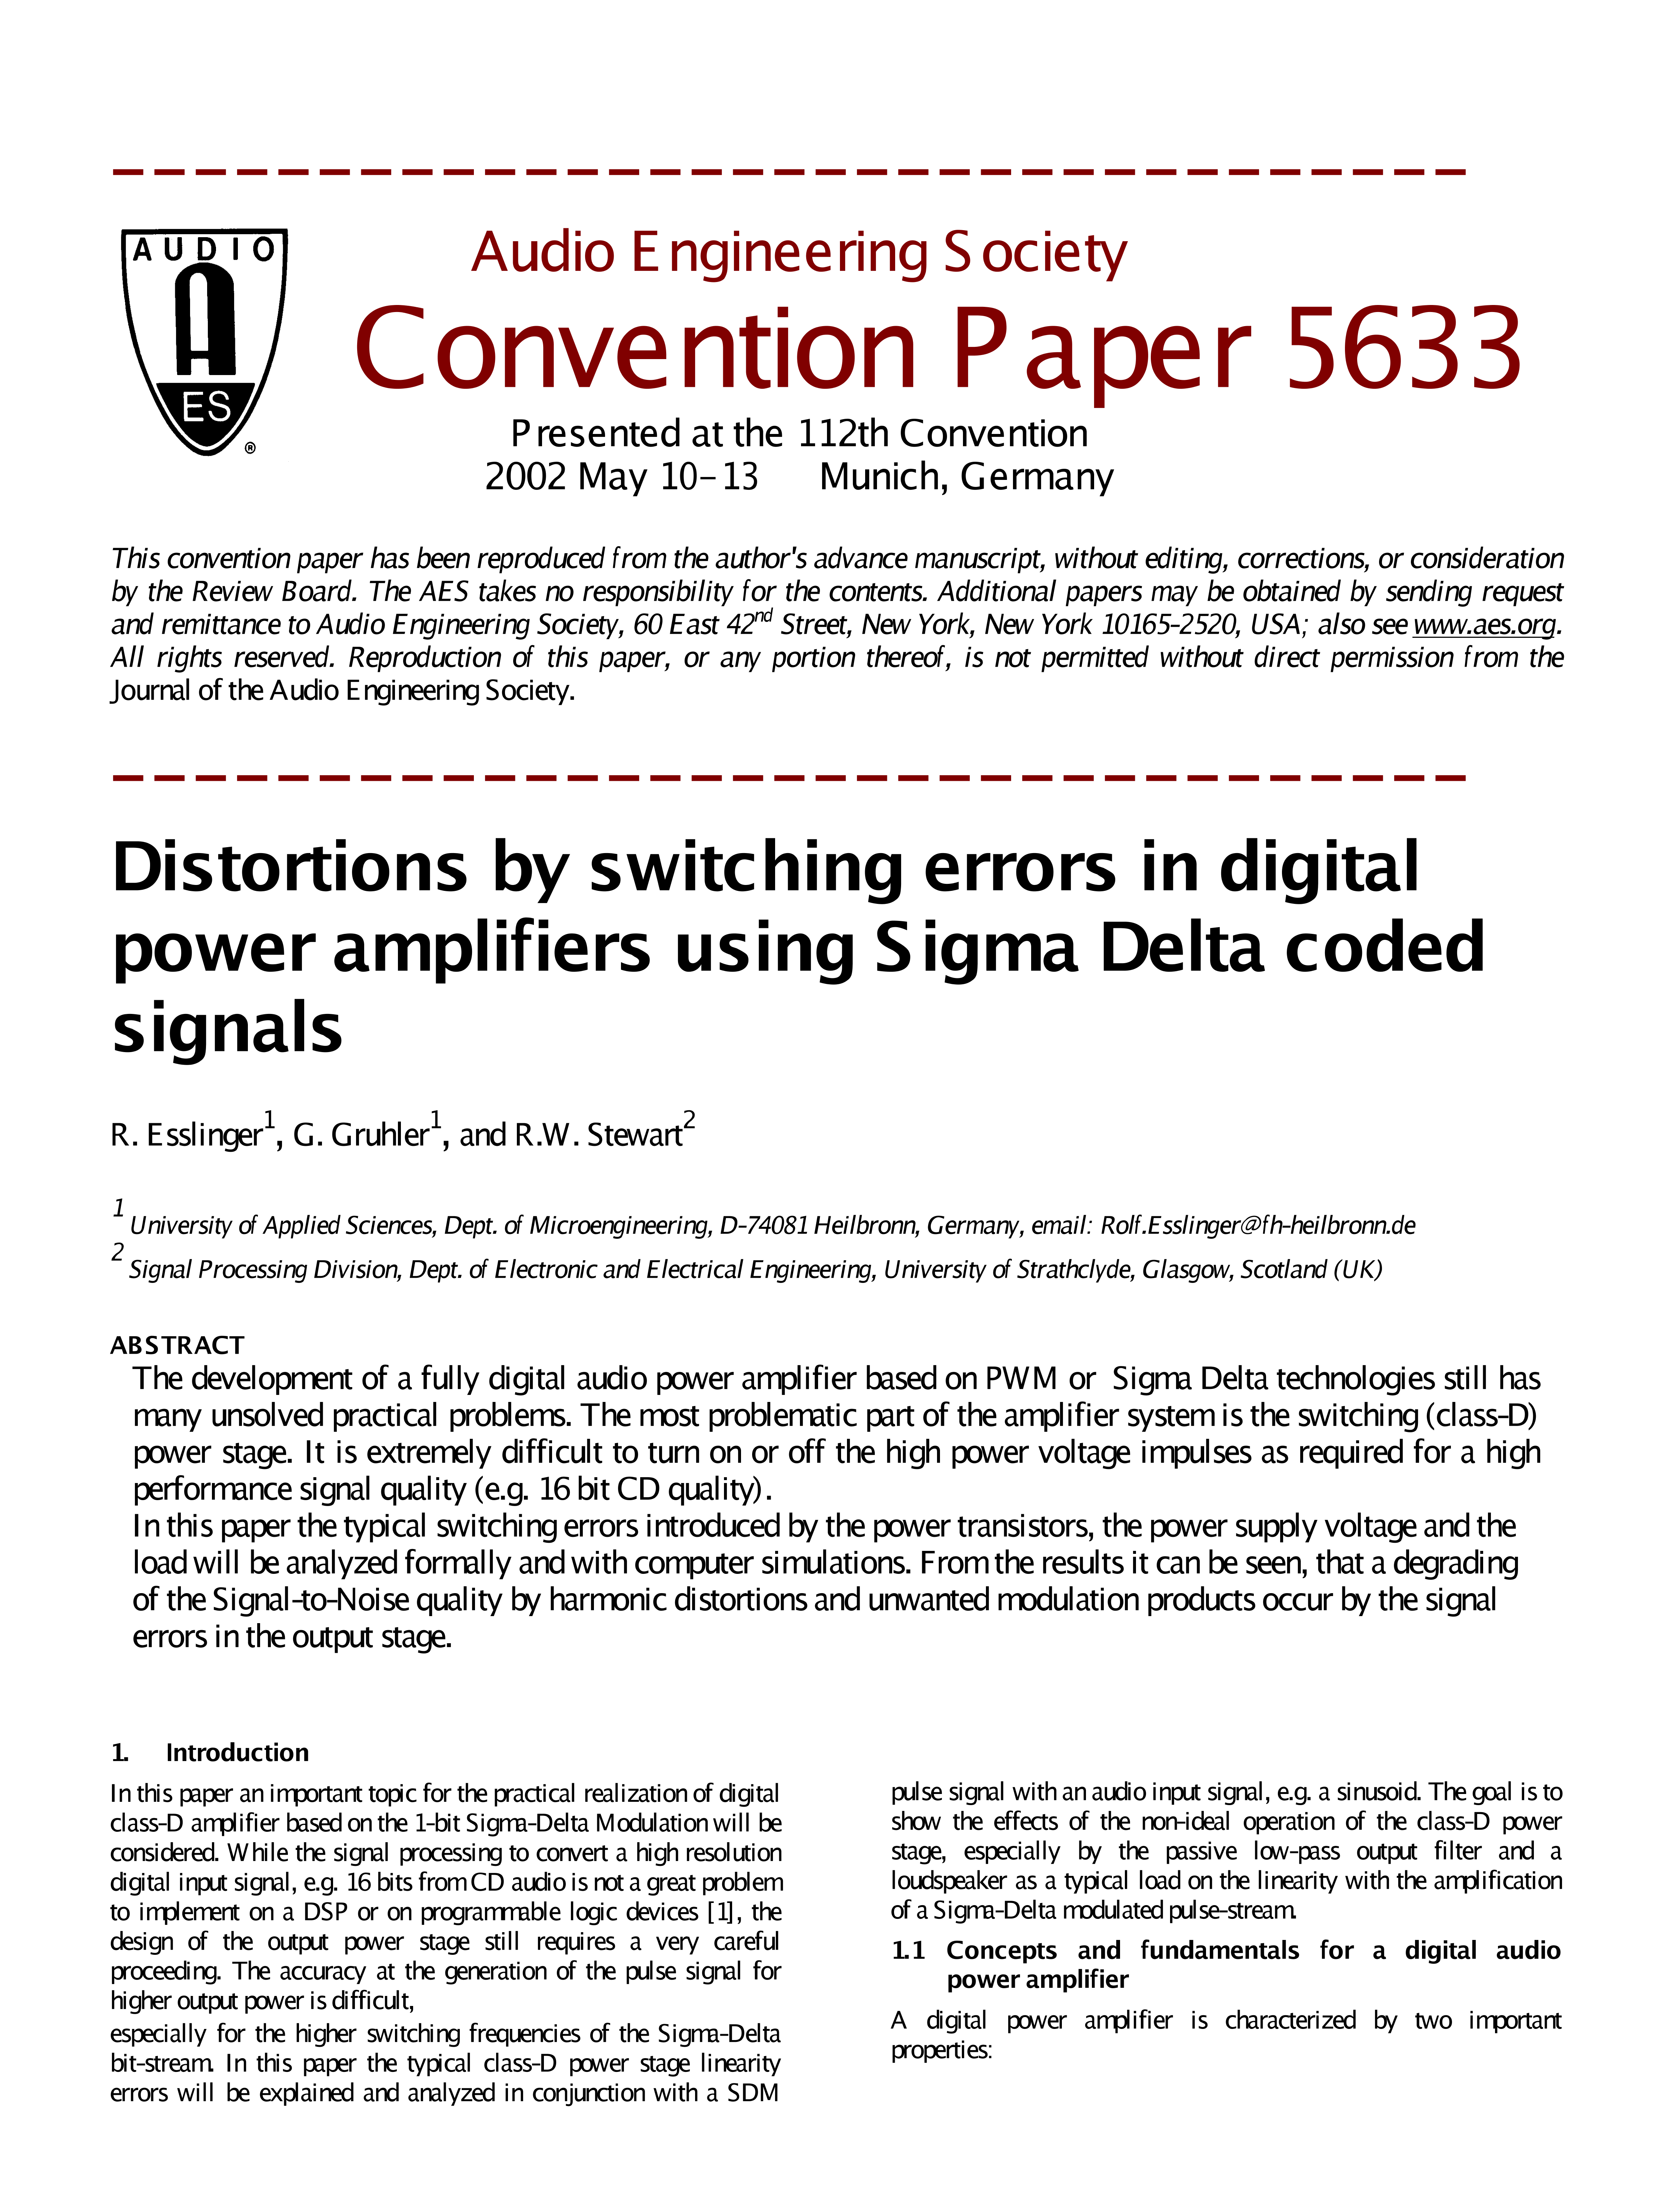 Aes E Library Distortions By Switching Errors In Digital Power Feedforward Noise Cancellation Rejects Supply Ee Times Amplifiers Using Sigma Delta Coded Signals